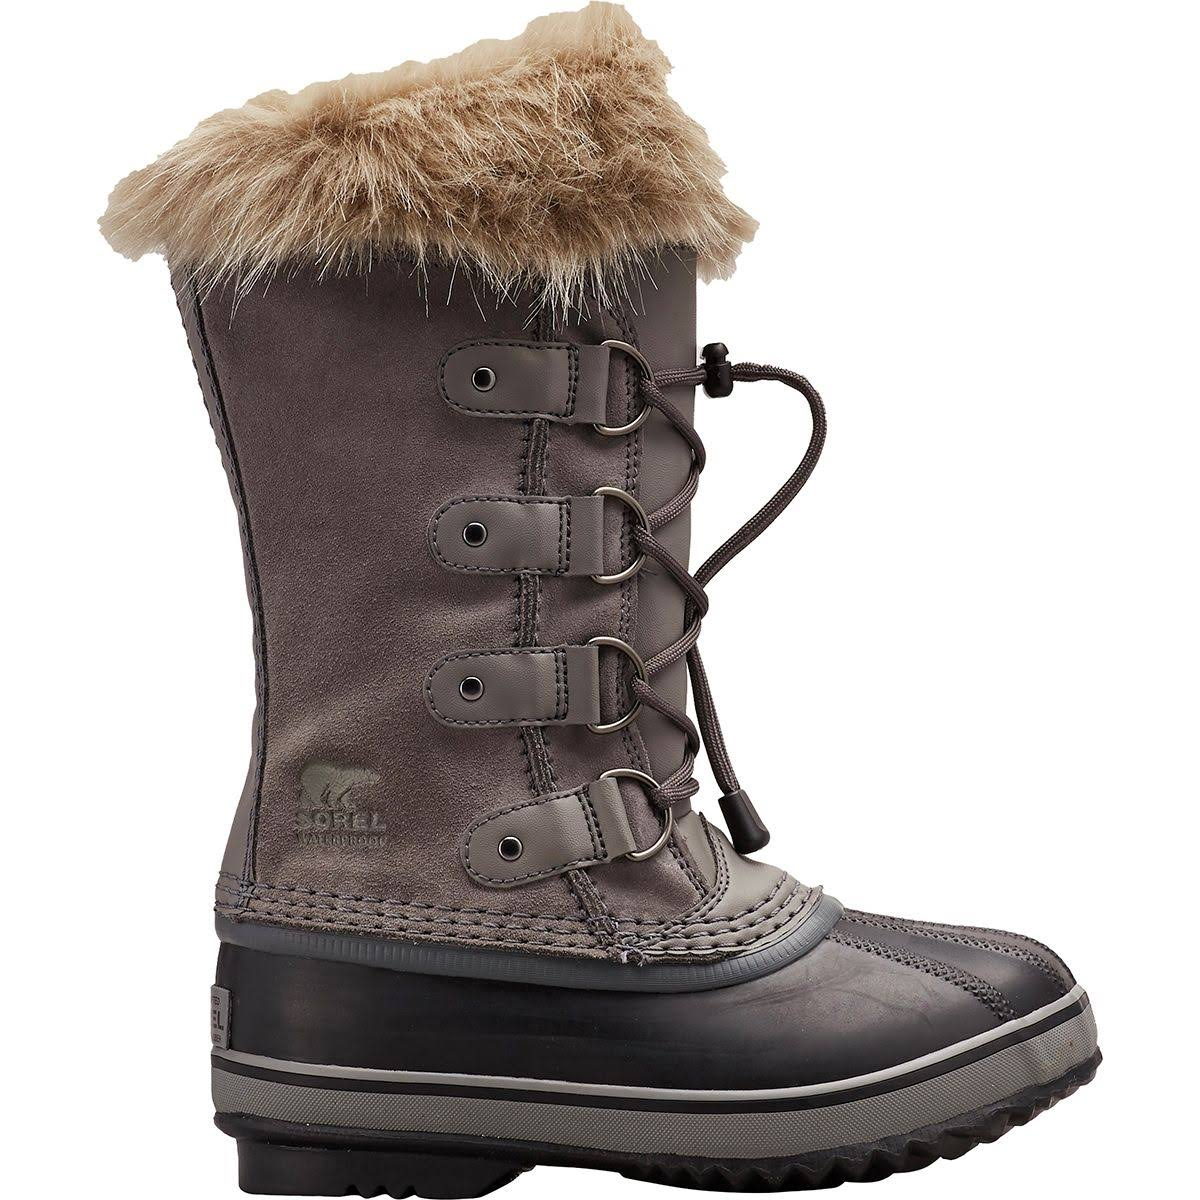 Sorel Youth Joan of Arctic Boot - 1 - Quarry